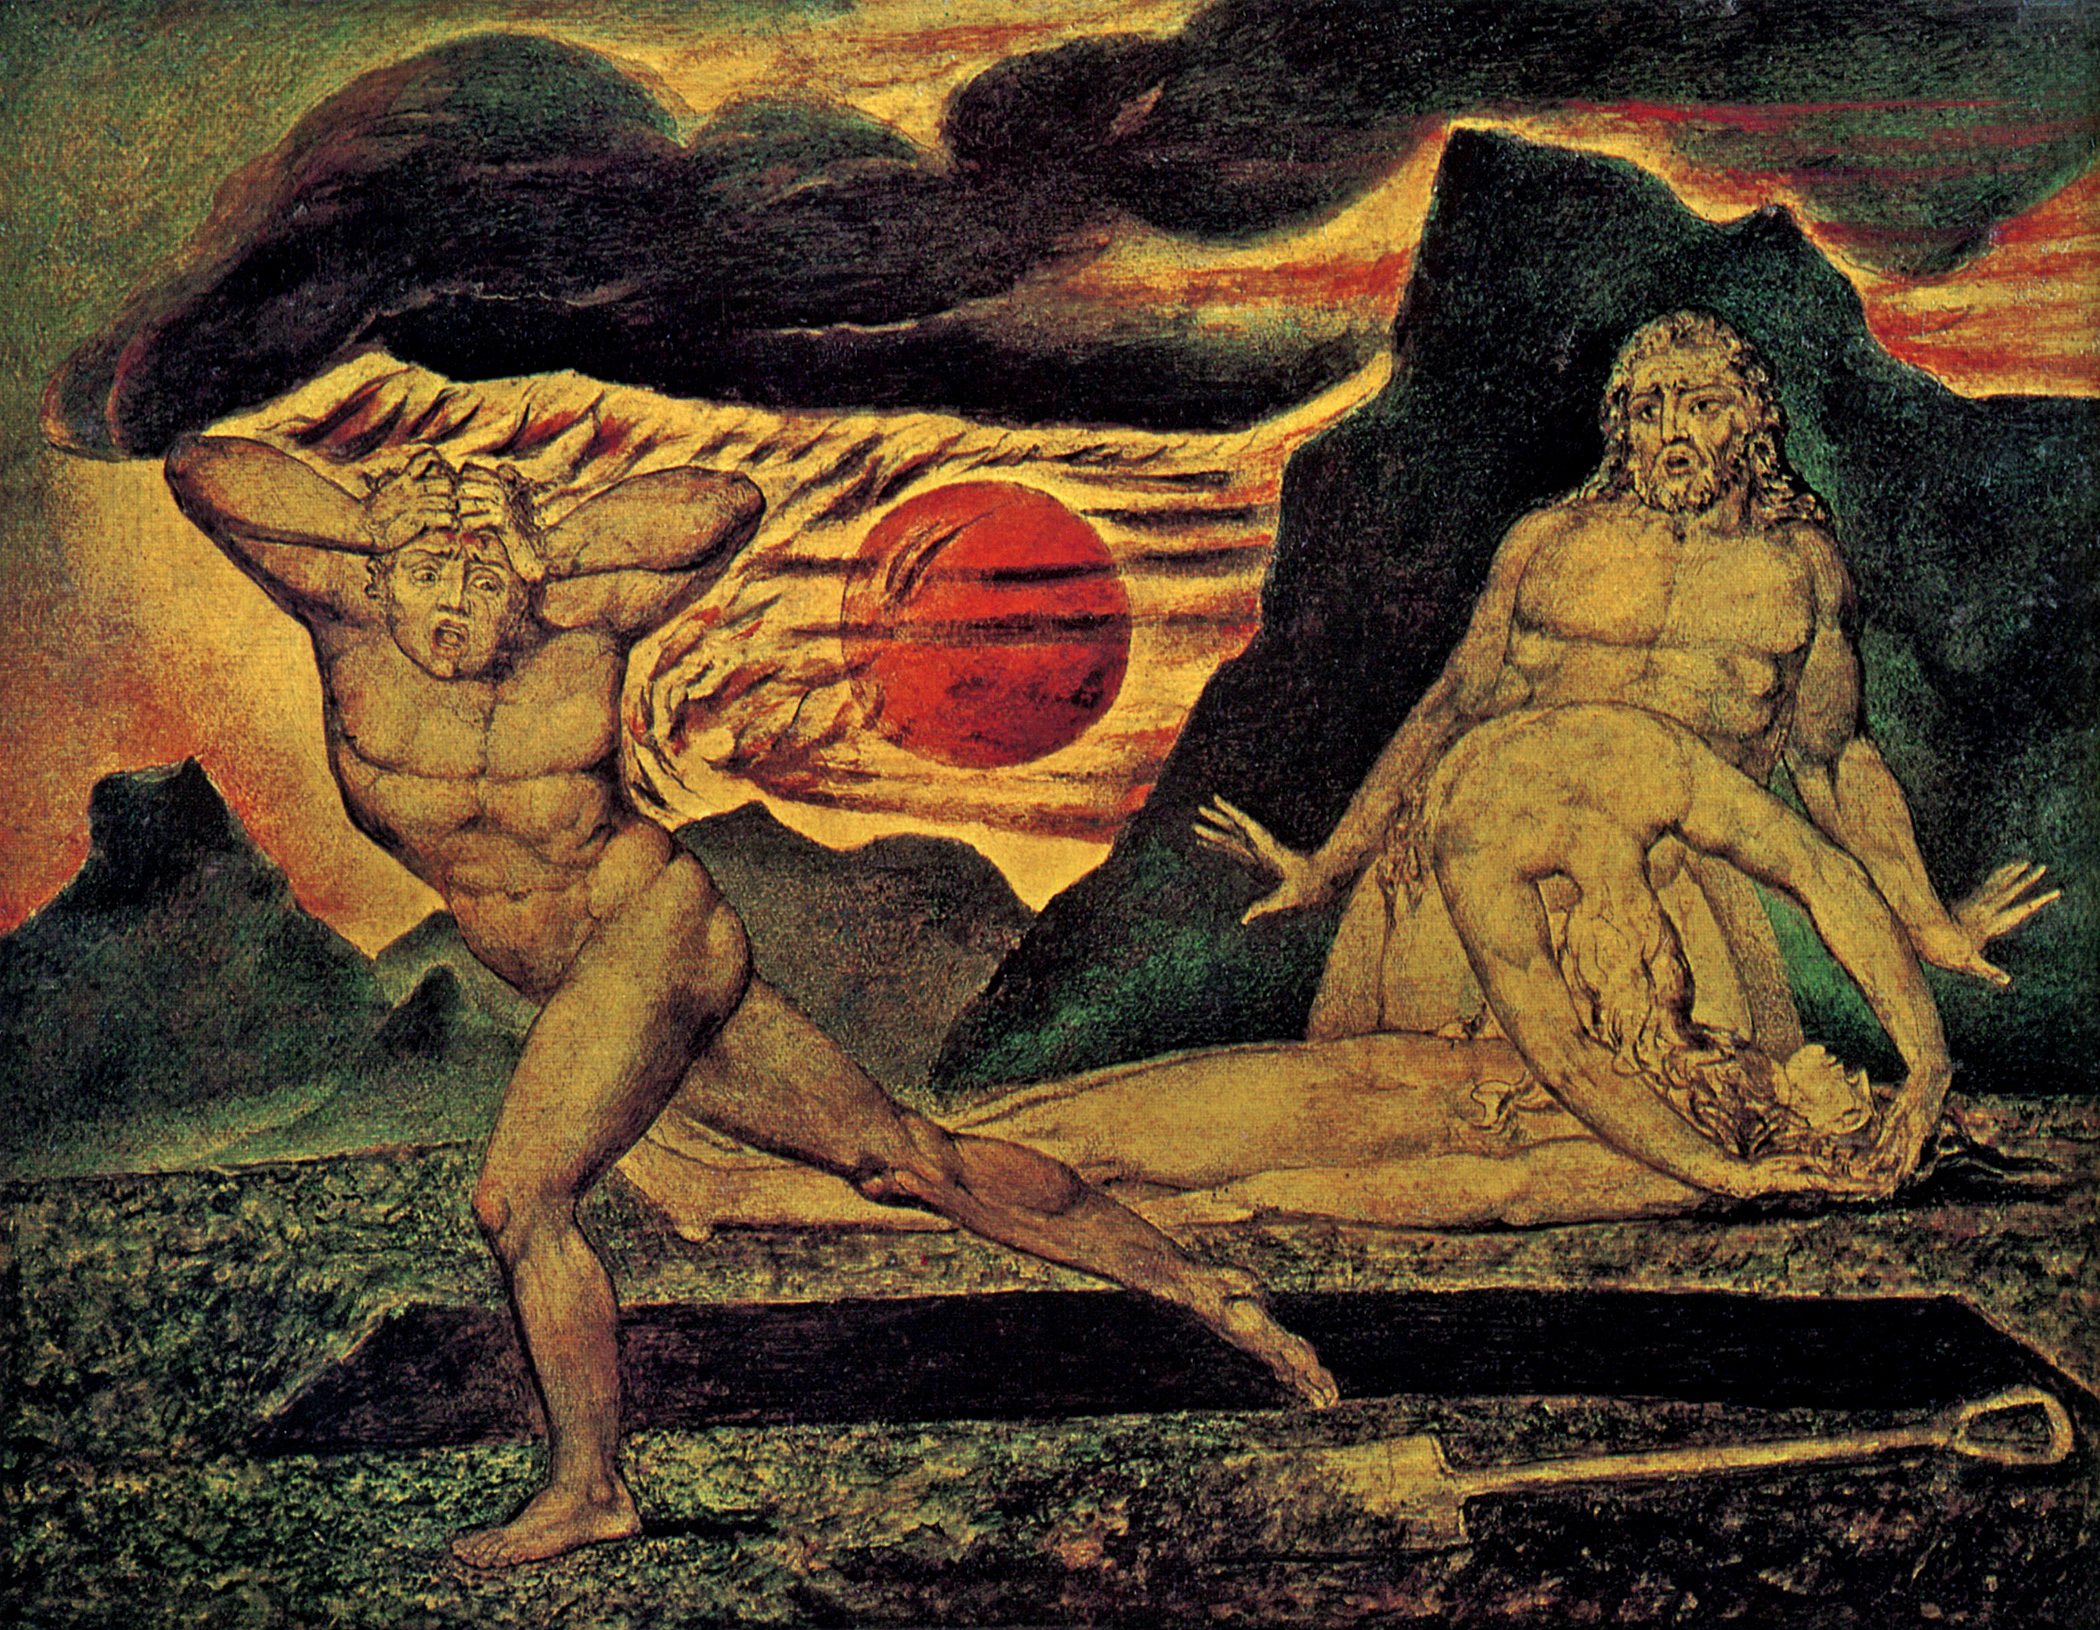 Algunas obras de William Blake